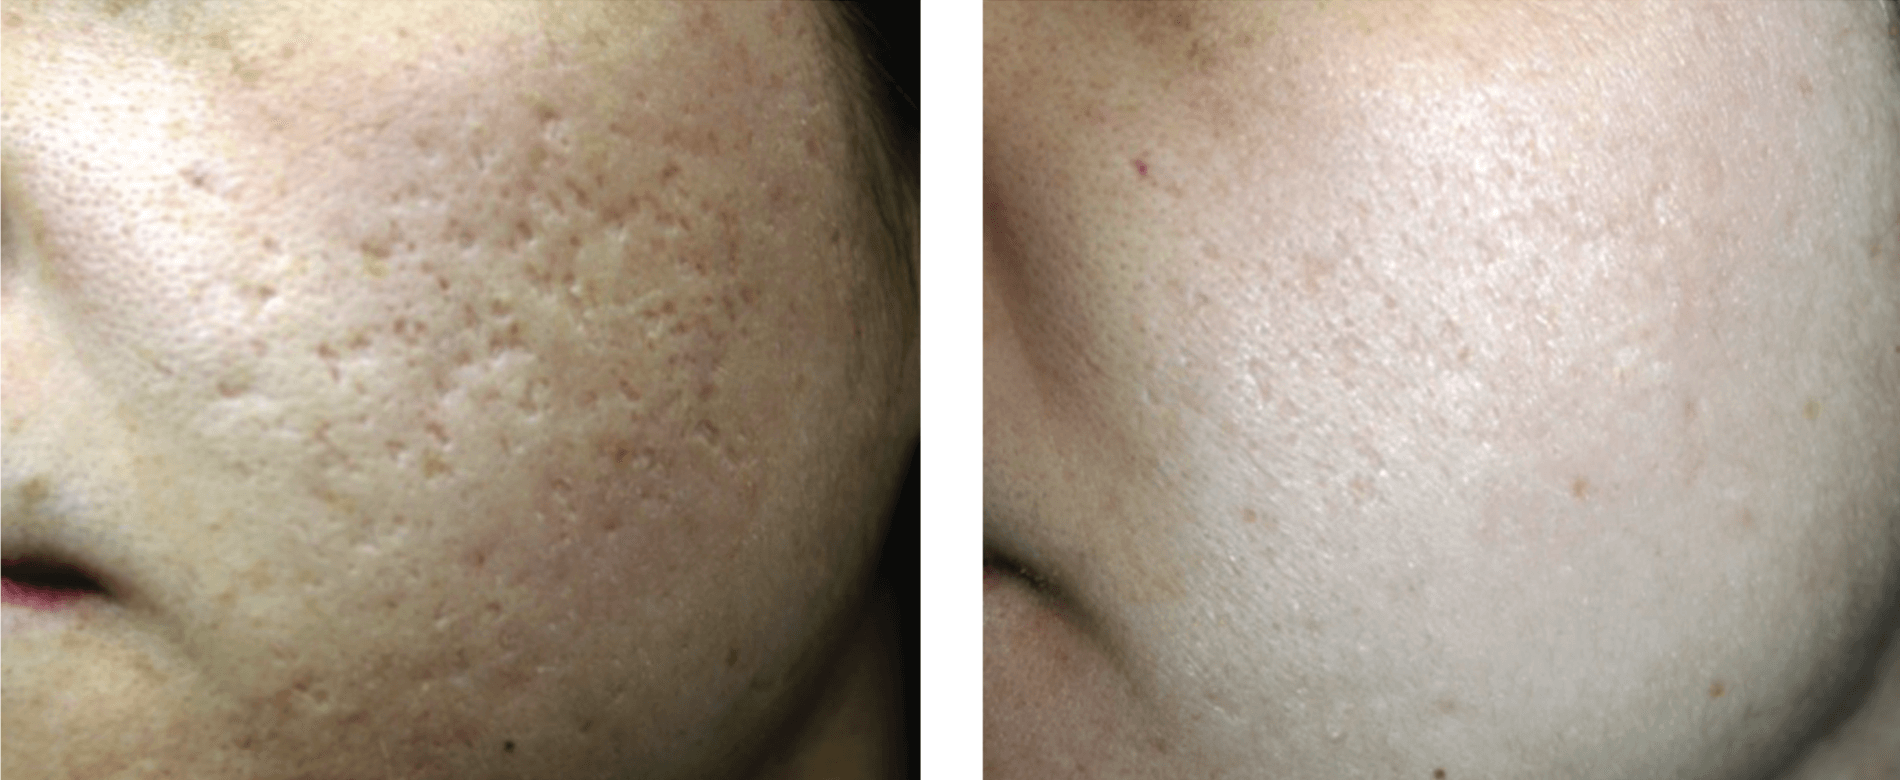 Post 3 treatments - Results may vary from person to person.